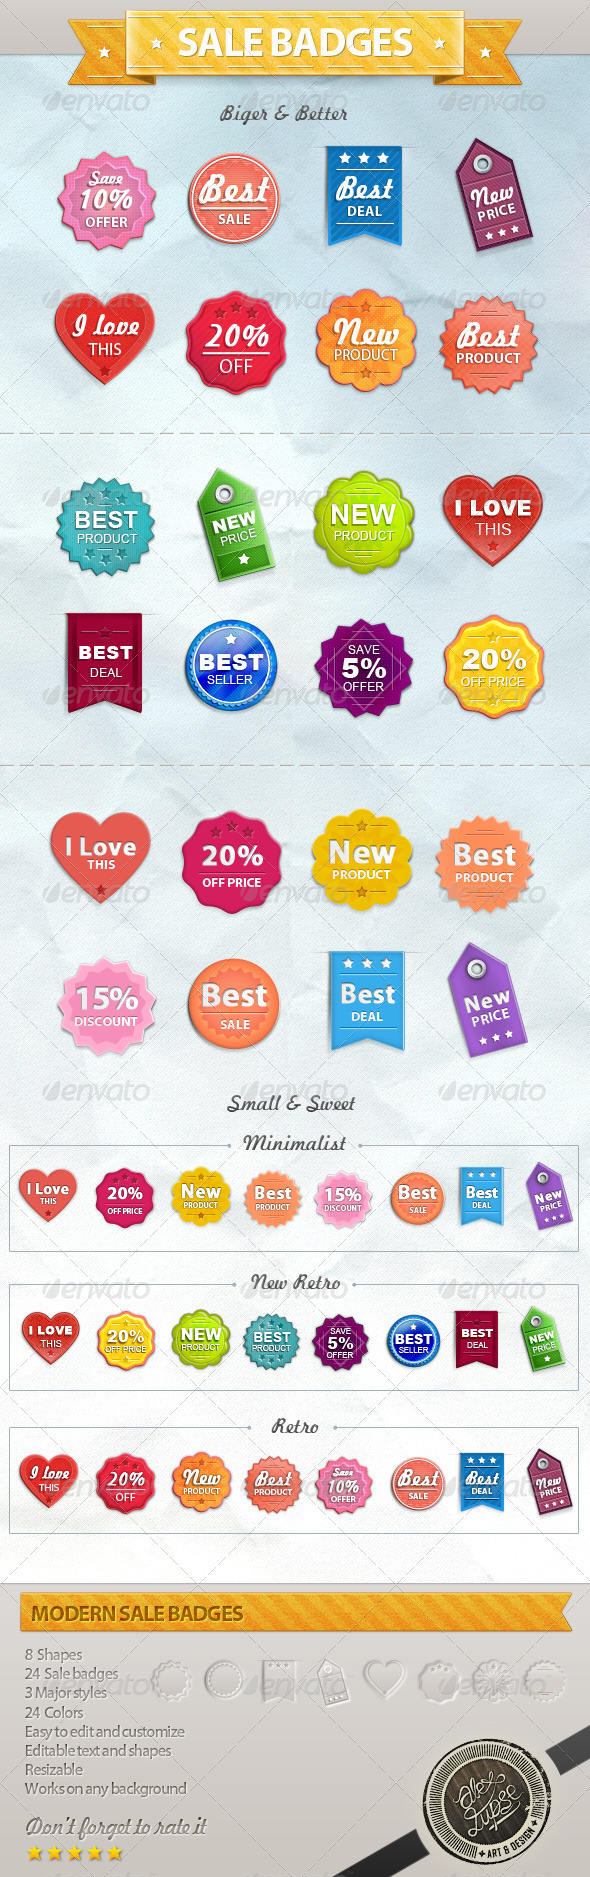 Sale Badges and Tags - Badges &amp; Stickers Web Elements